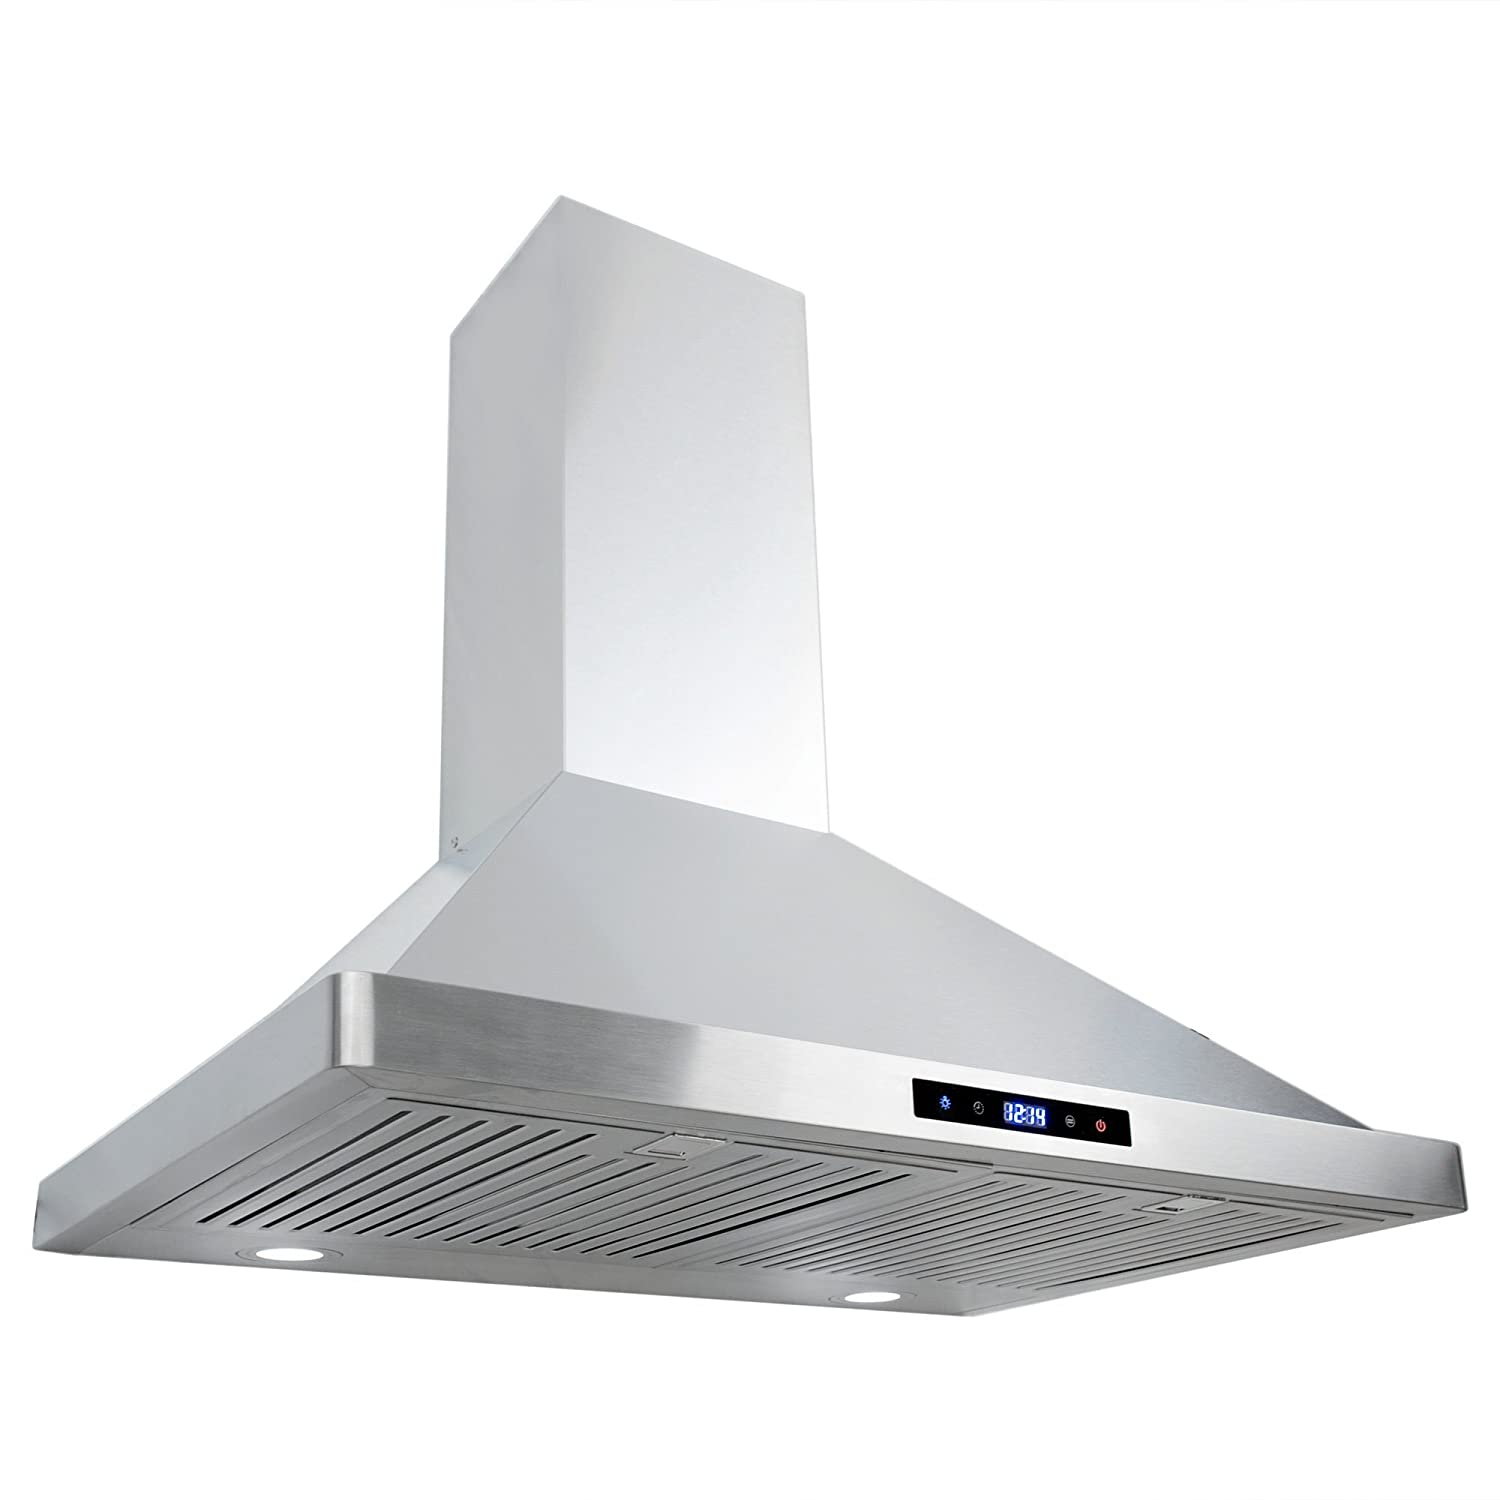 Amazon.com: Cosmo 63175S 30 in. Wall Mount Range Hood with Soft ...